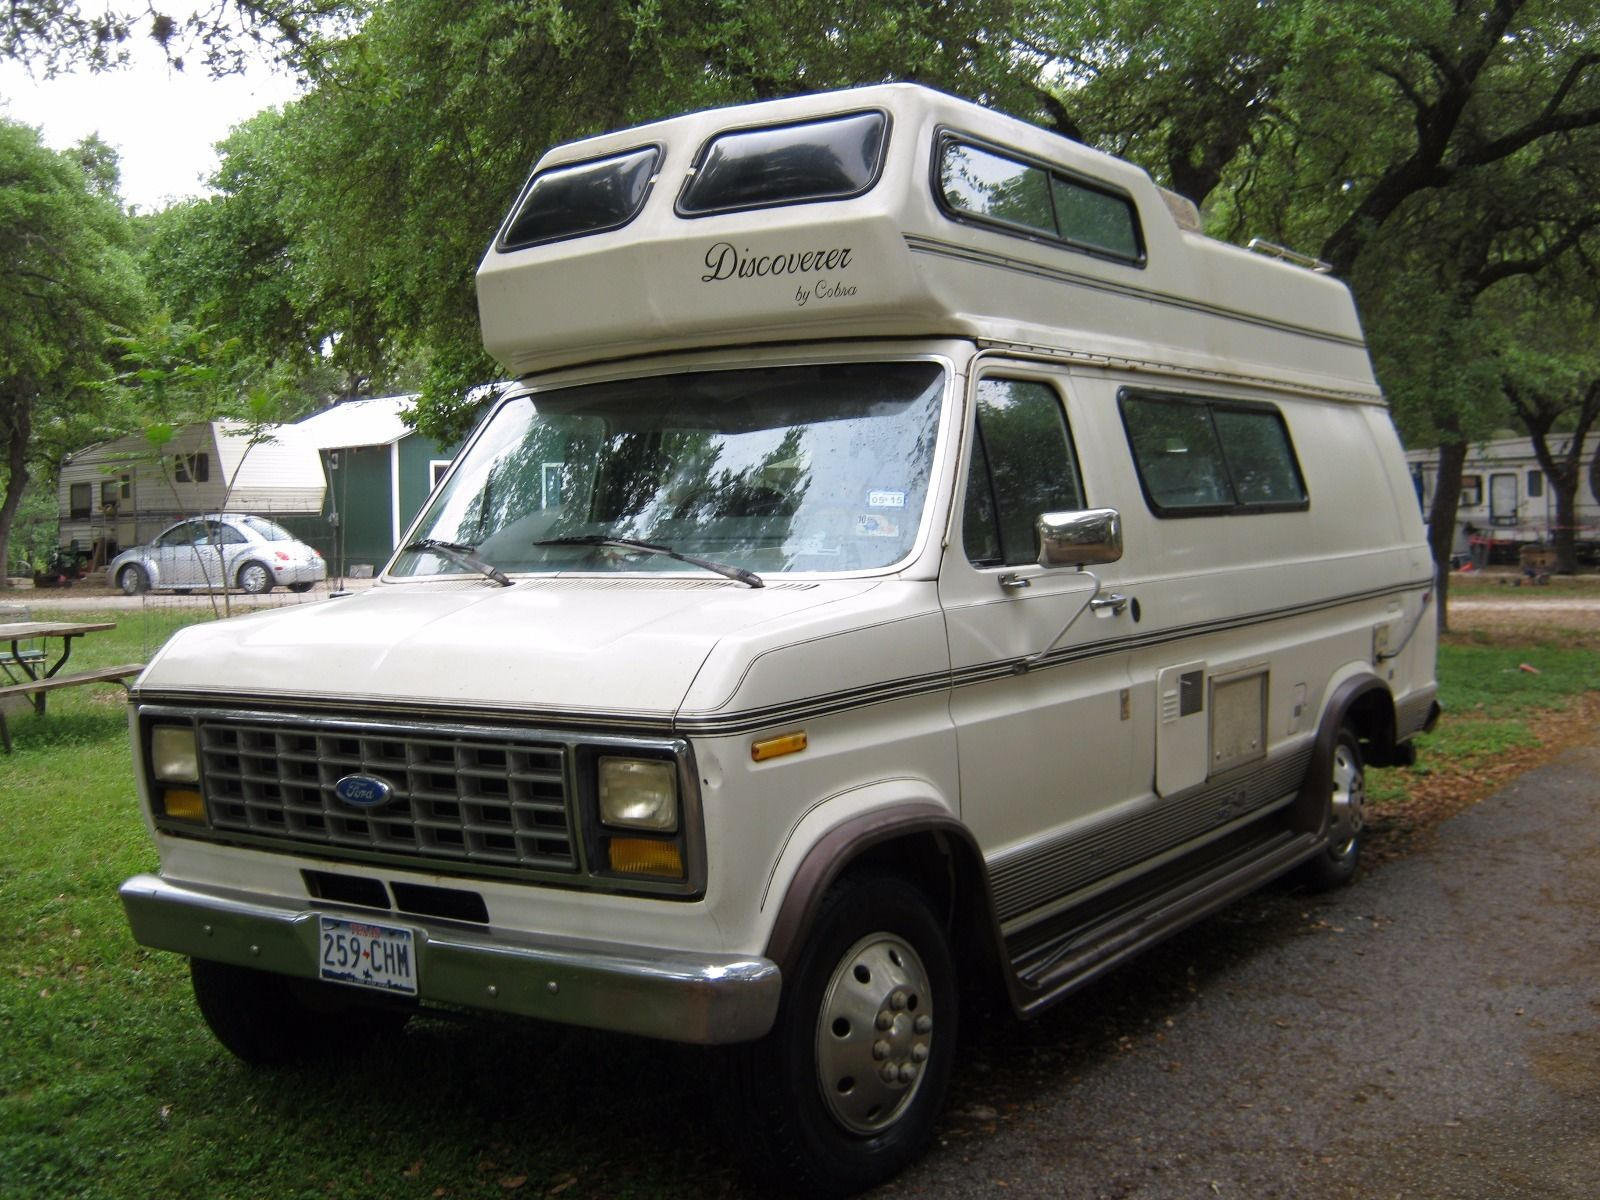 1991 ford e250 discoverer by cobra 19ft camper for sale canyon lake tx. Black Bedroom Furniture Sets. Home Design Ideas